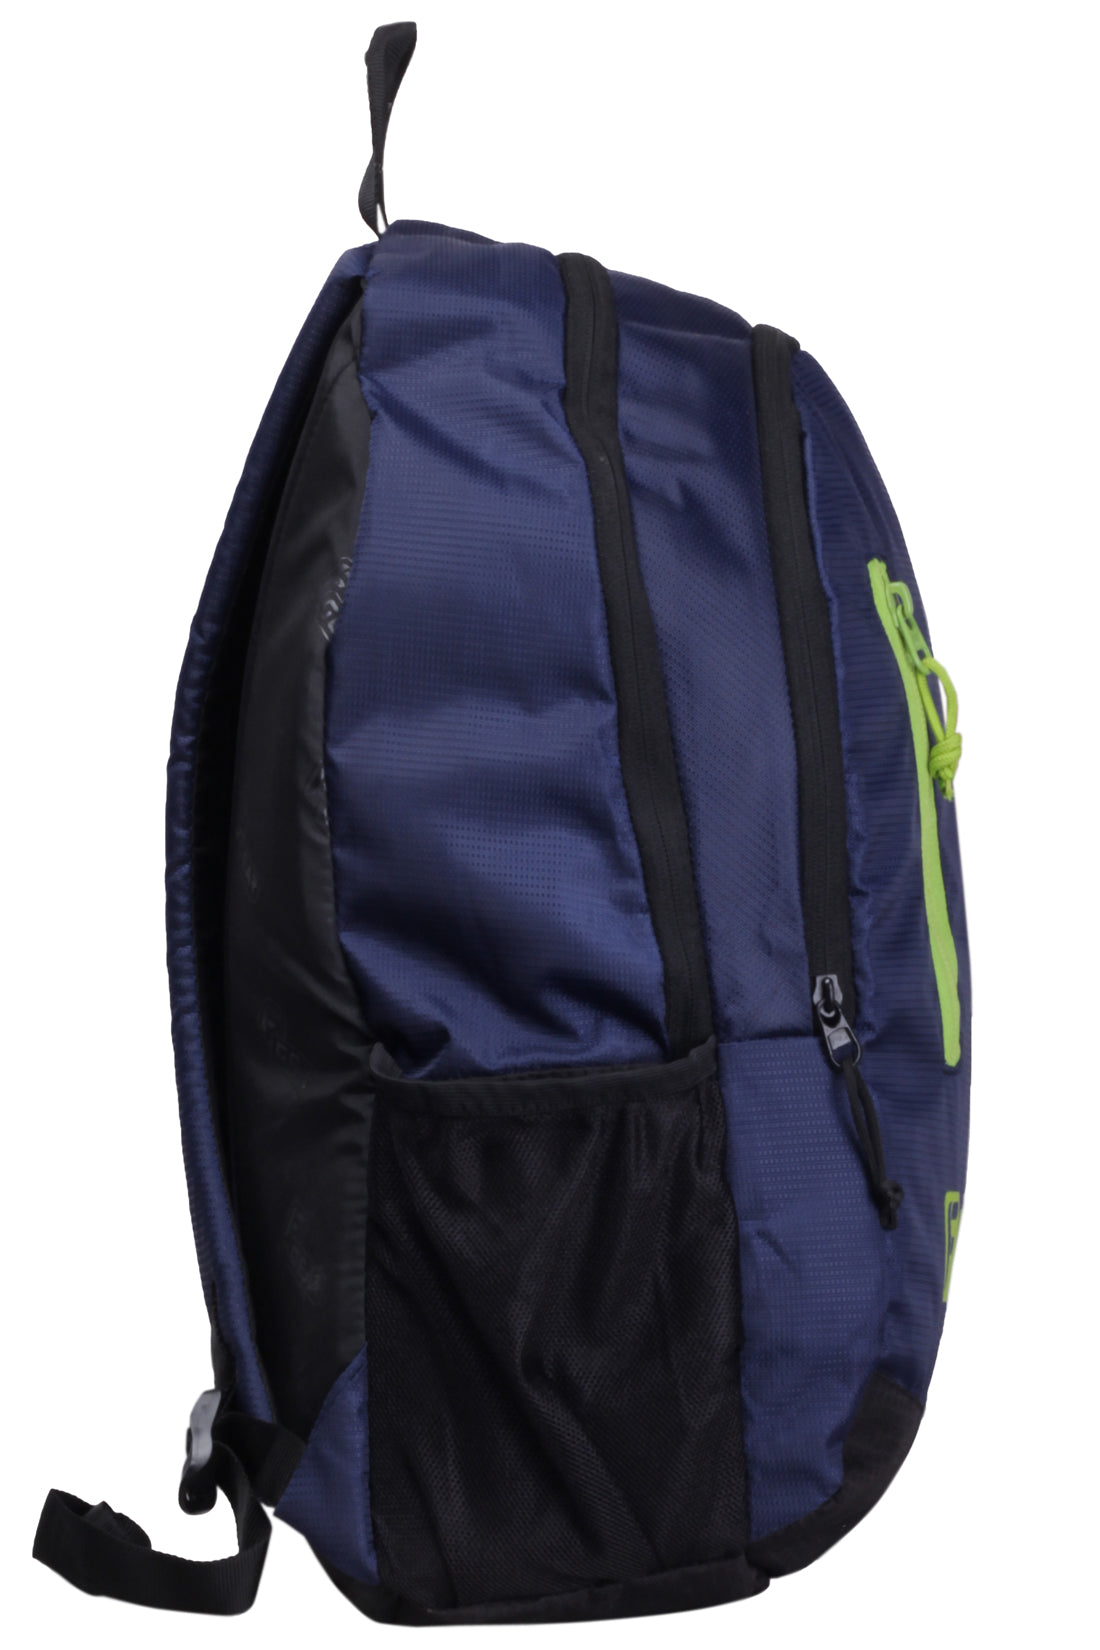 F Gear Bi Frost 26 Ltrs Navy Blue Casual Laptop Backpack (2473)